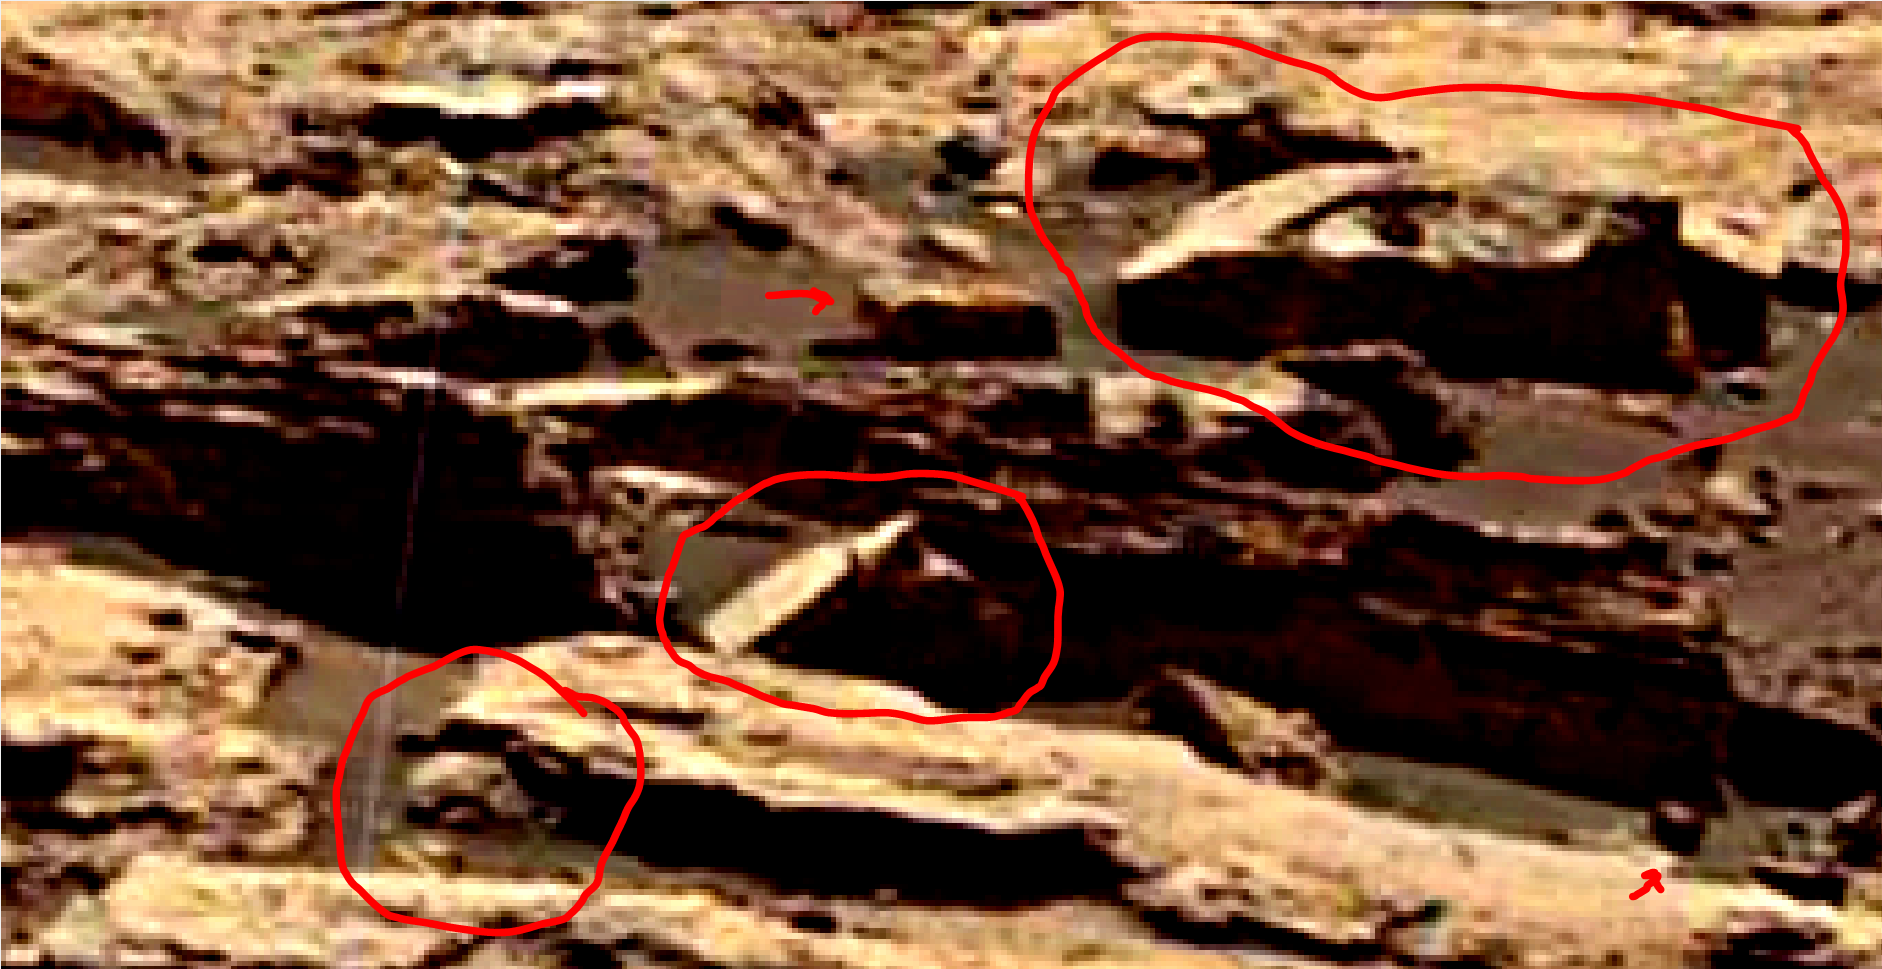 mars-sol-1489-anomaly-artifacts-8-was-life-on-mars